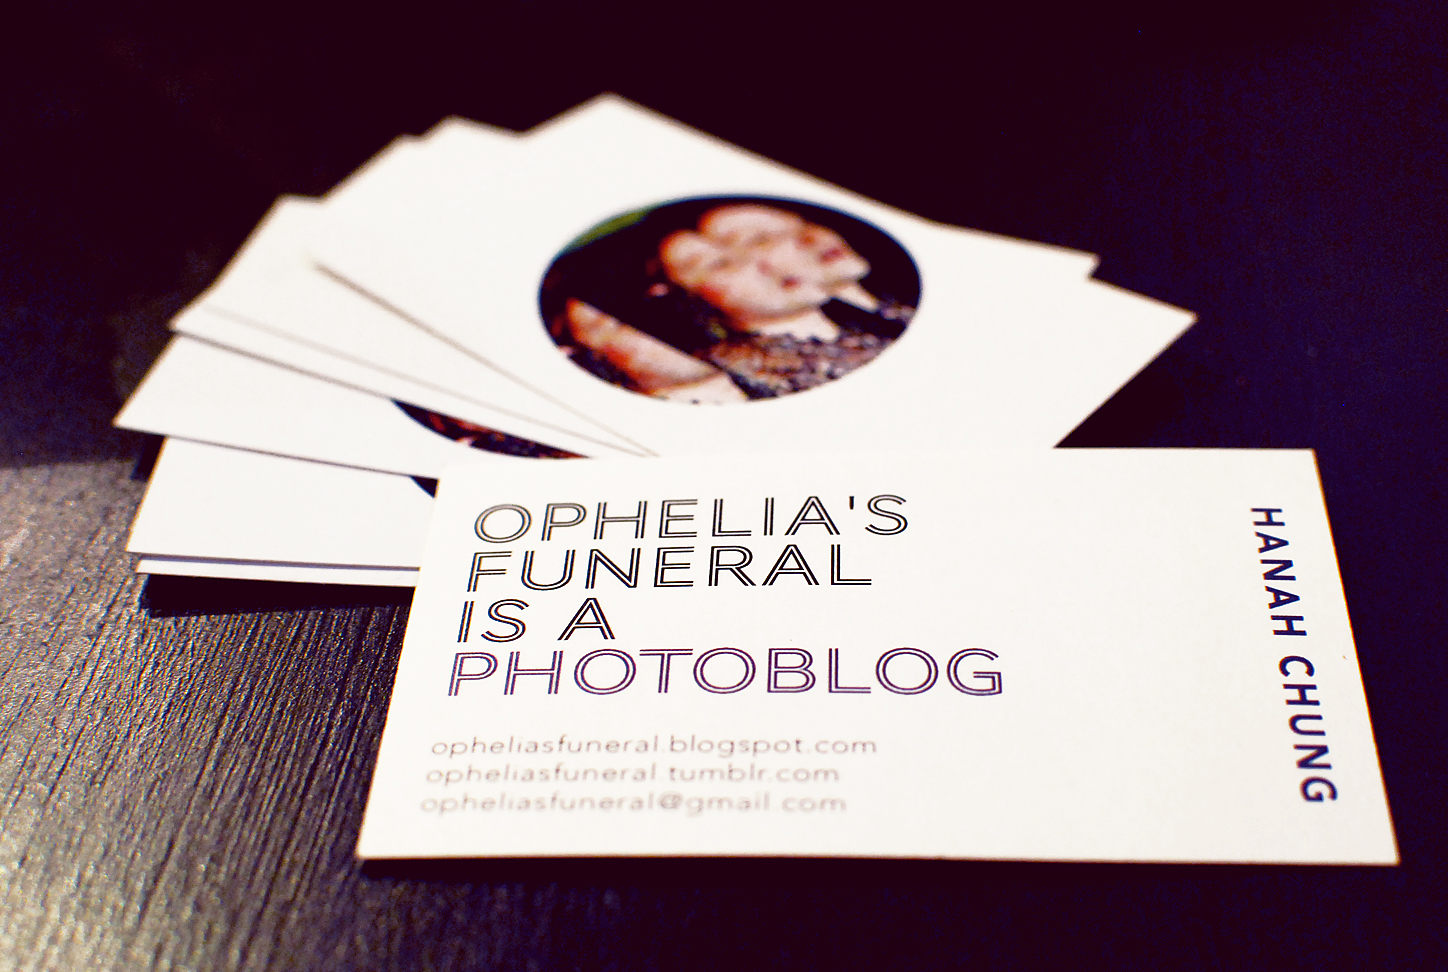 In the meantime, check out my new business cards y'all! Printed and